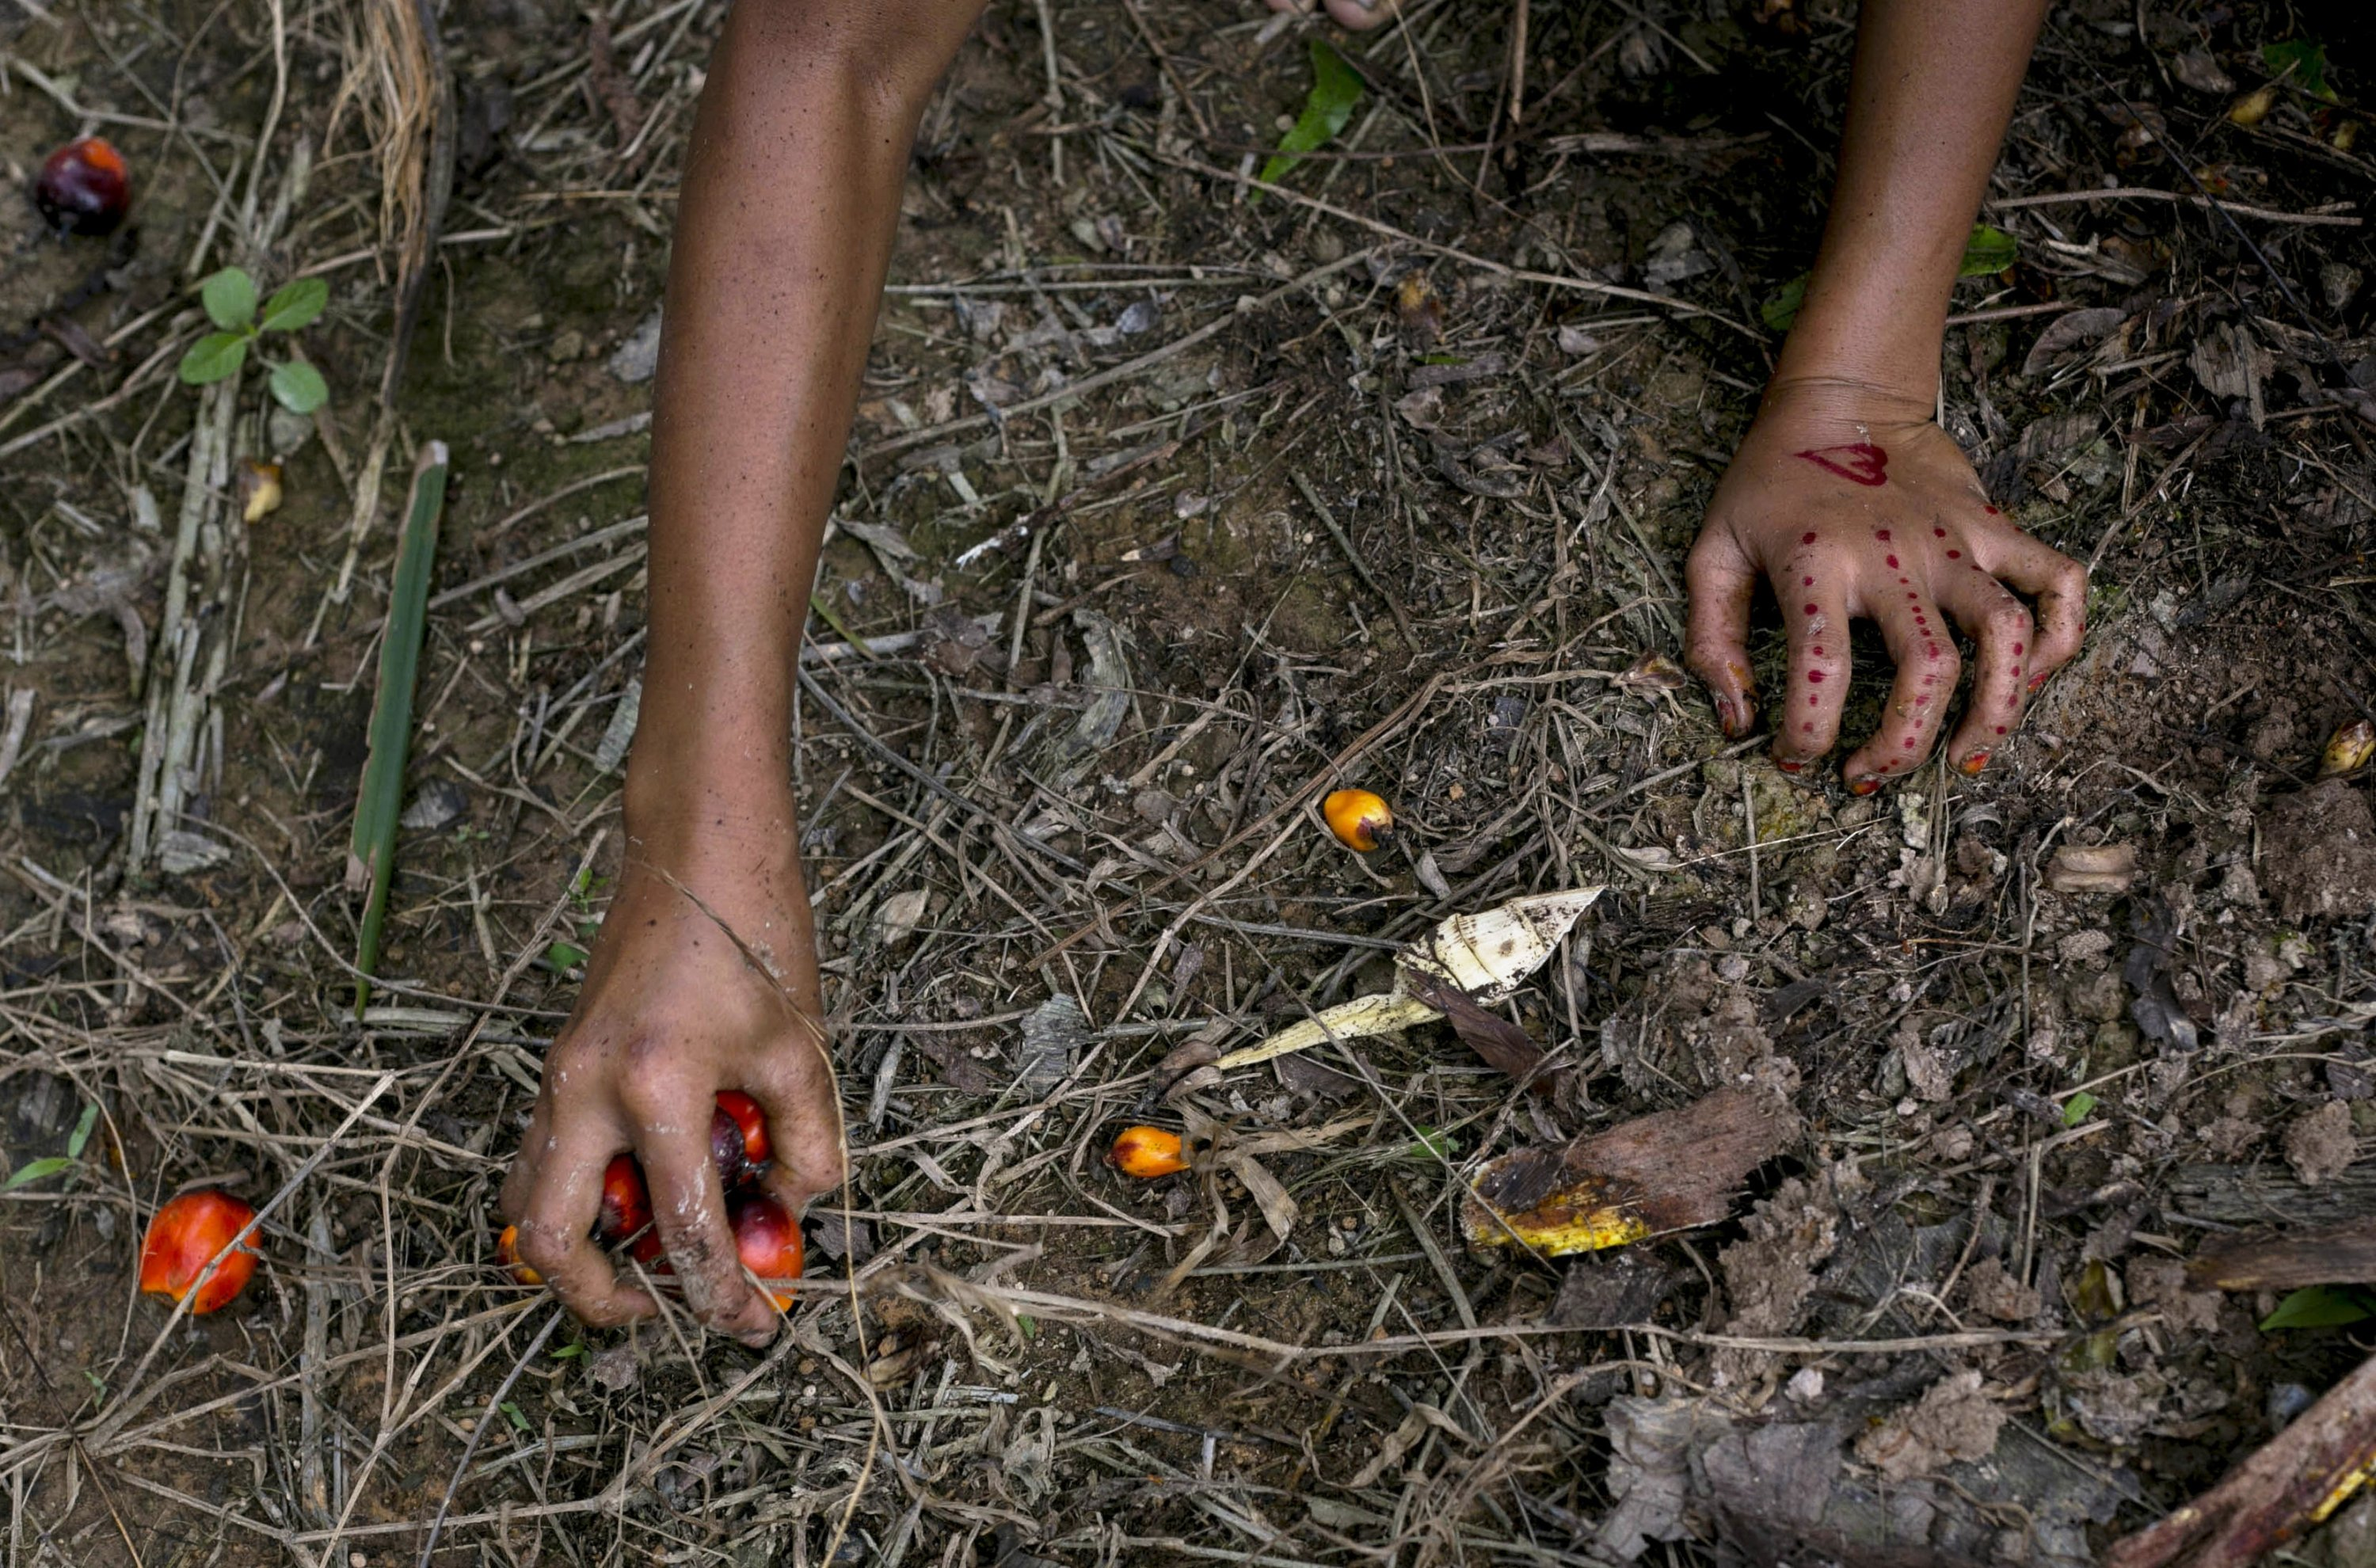 A child collects palm kernels from the ground at a palm oil plantation in Sumatra, Indonesia, Monday, Nov. 13, 2017. Children often work to help parents to reach their targets set by the vast plantations across Indonesia and neighboring Malaysia. (AP Photo)